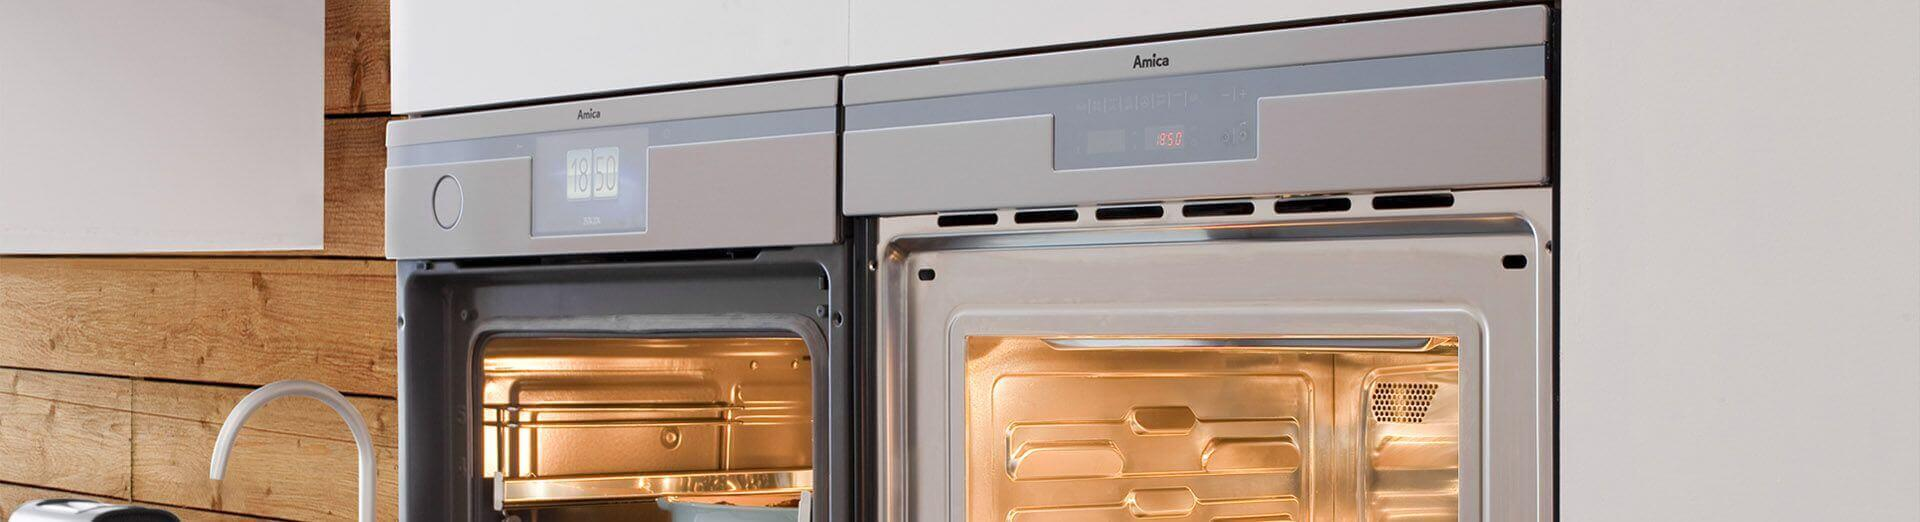 Compact Appliances